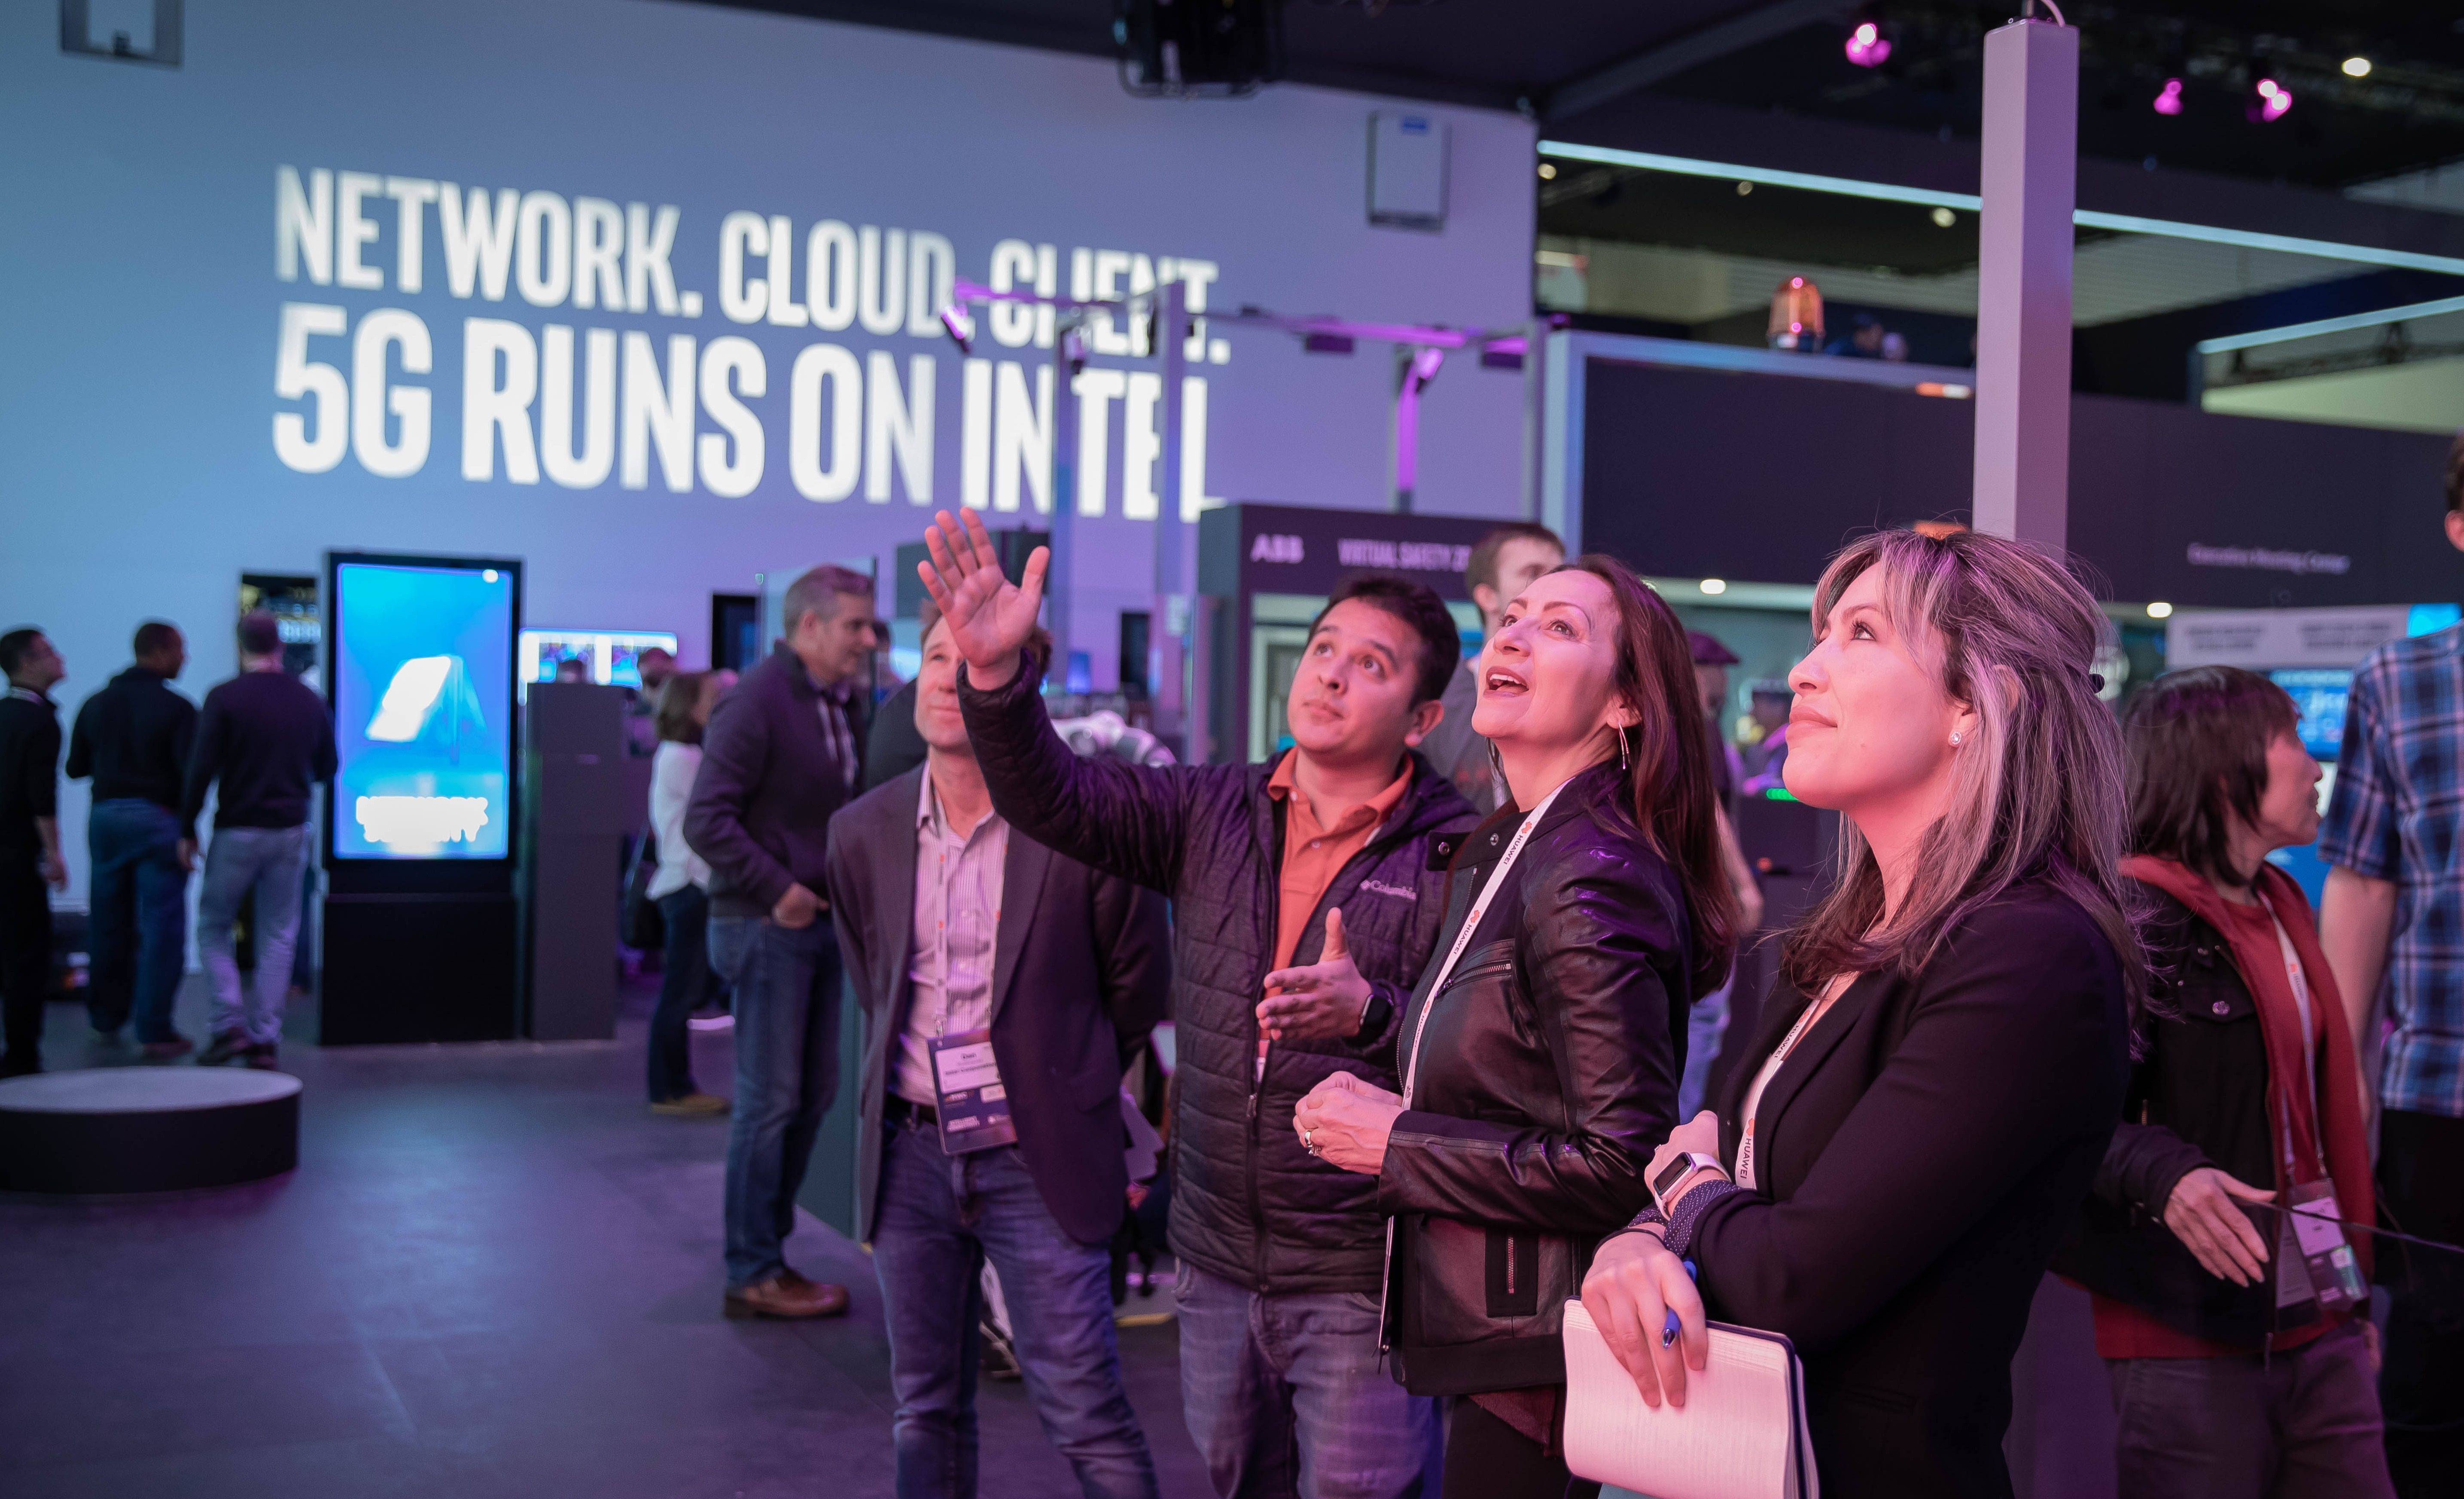 19b383c0f05 Intel showcase its latest technologies in 5G and networking from Feb.  25-28, 2019, at Mobile World Congress 2019 in Barcelona. (Credit: Intel  Corporation)